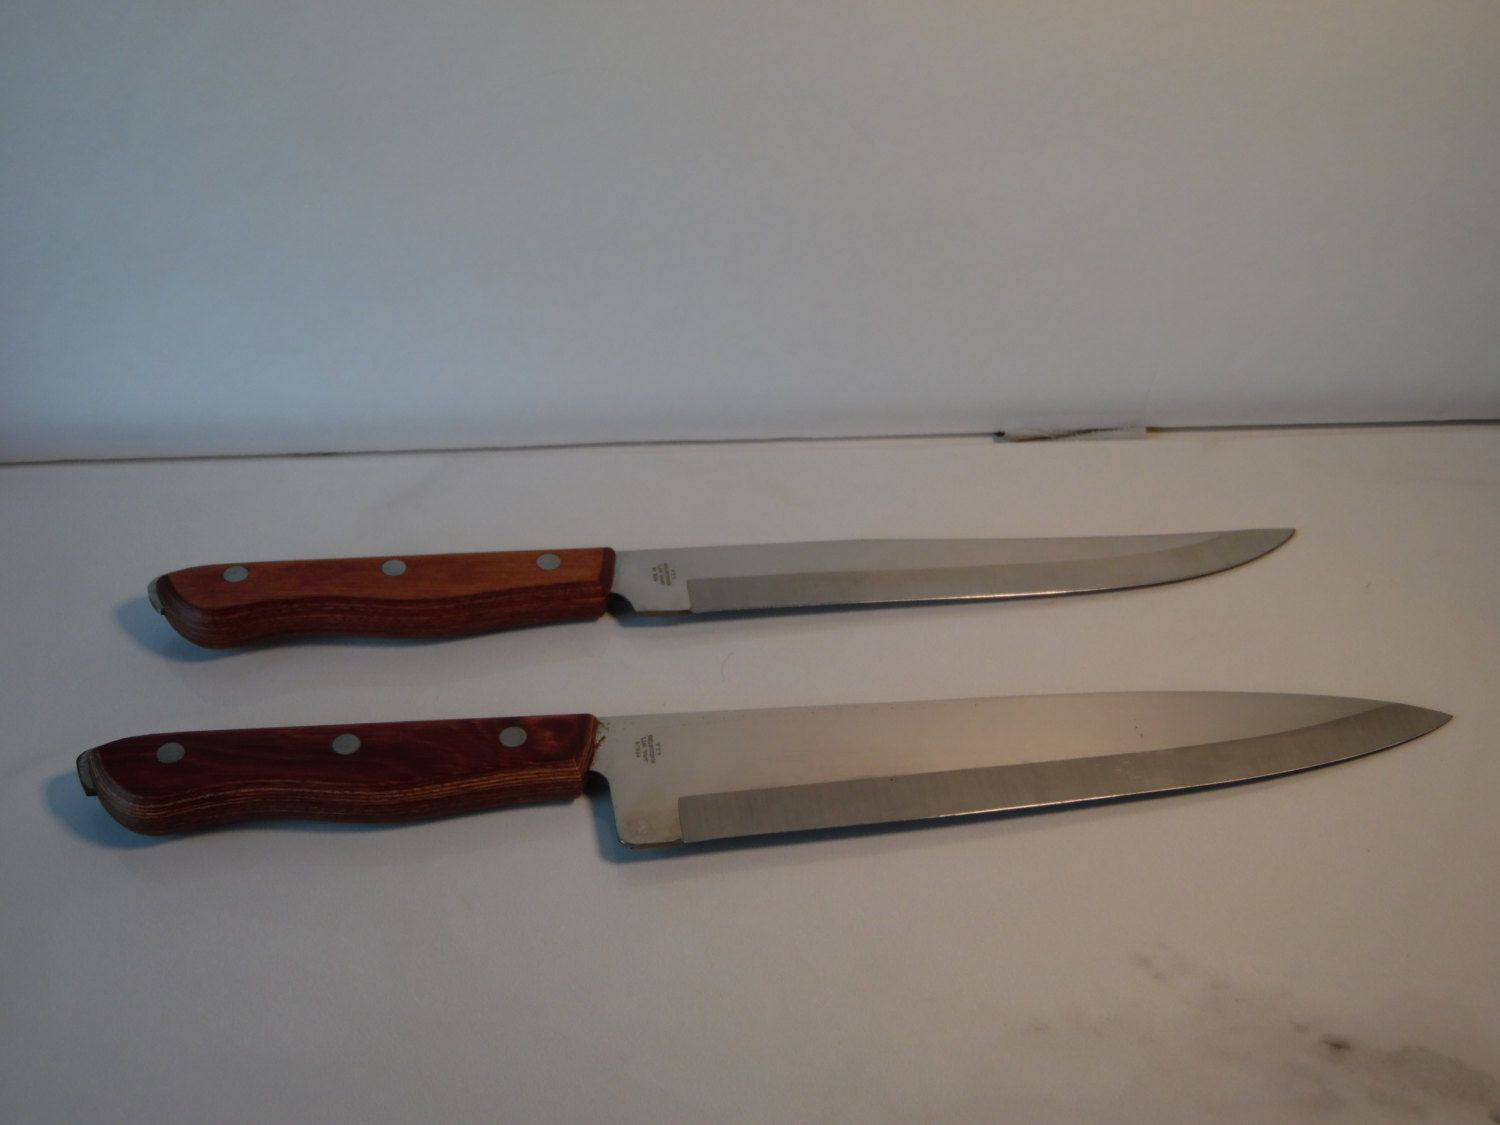 Nesting Knife Set Vintage Maxam Precision Hollow Ground Fine Stainless Steel Chef